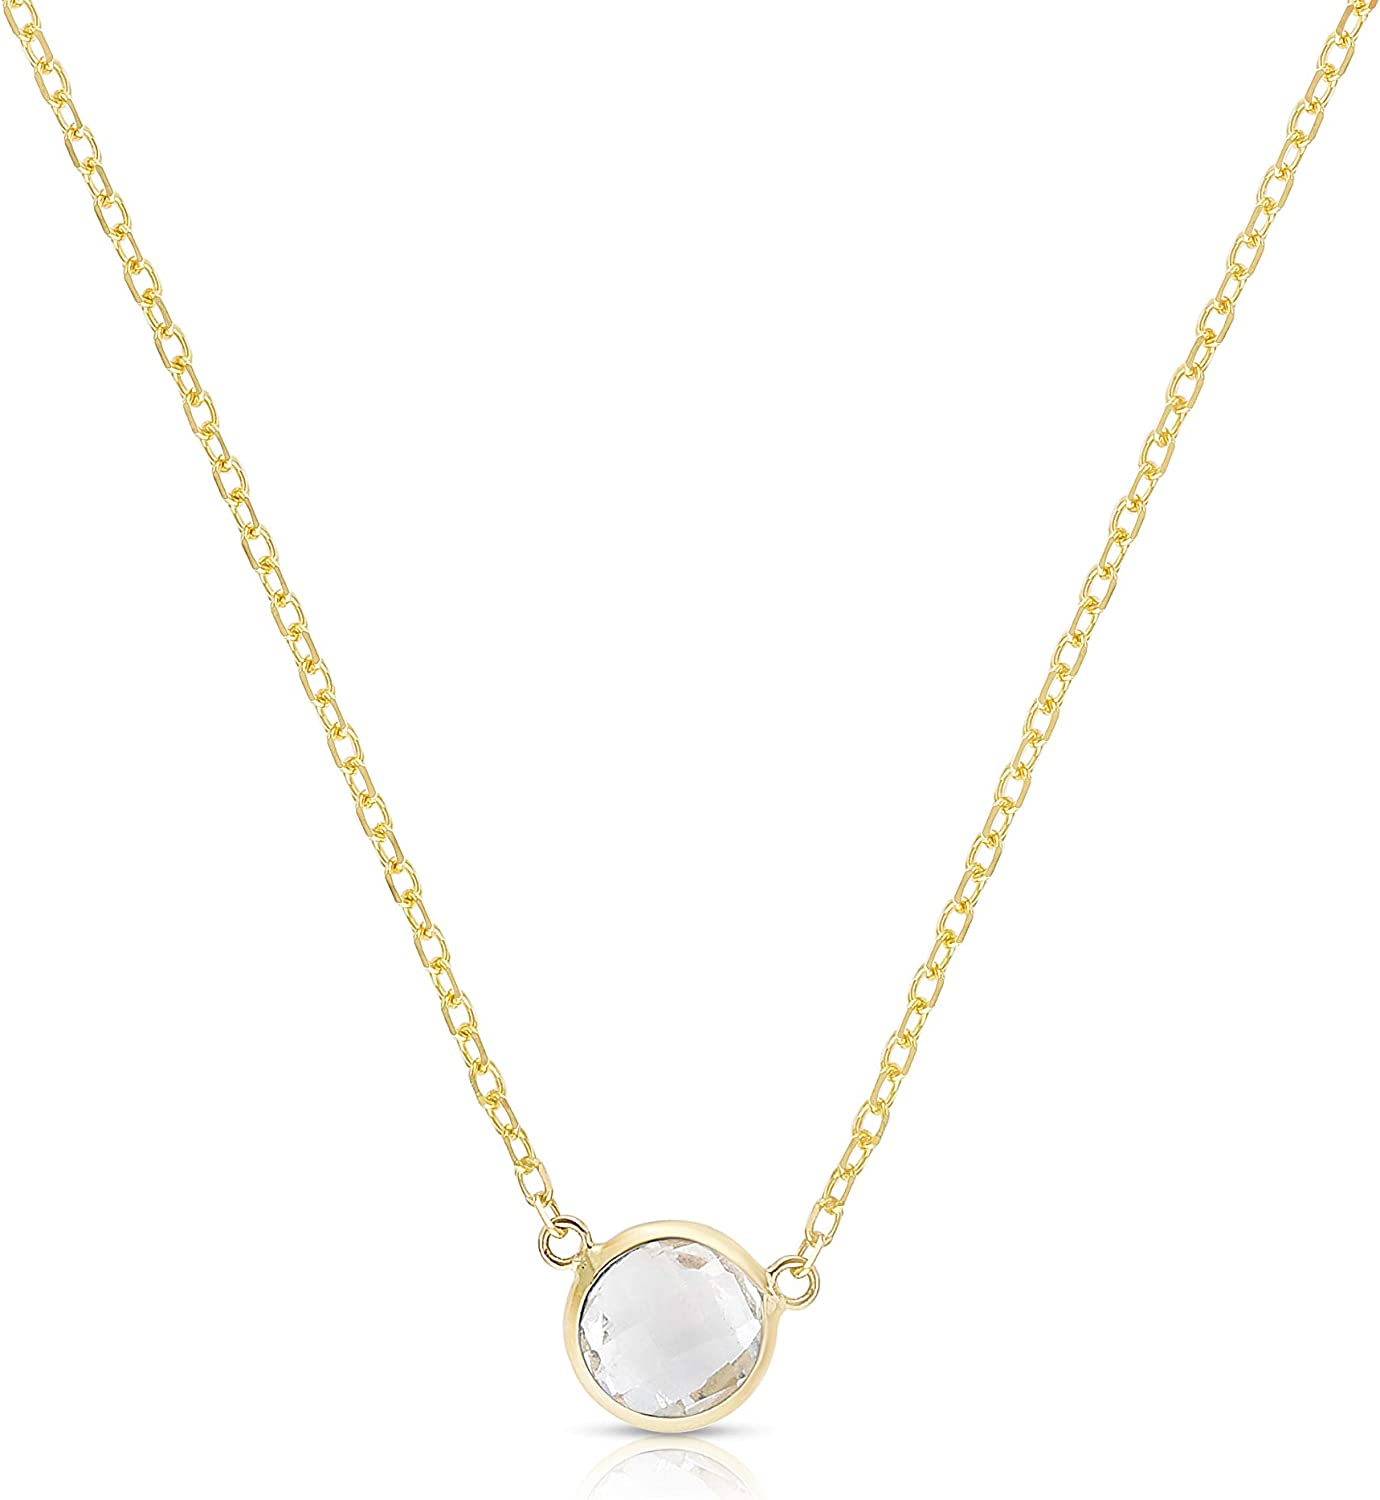 Floreo Super beauty product restock quality top 14k Yellow or Rose Solitaire Round Pendant Gemstone We OFFer at cheap prices Gold